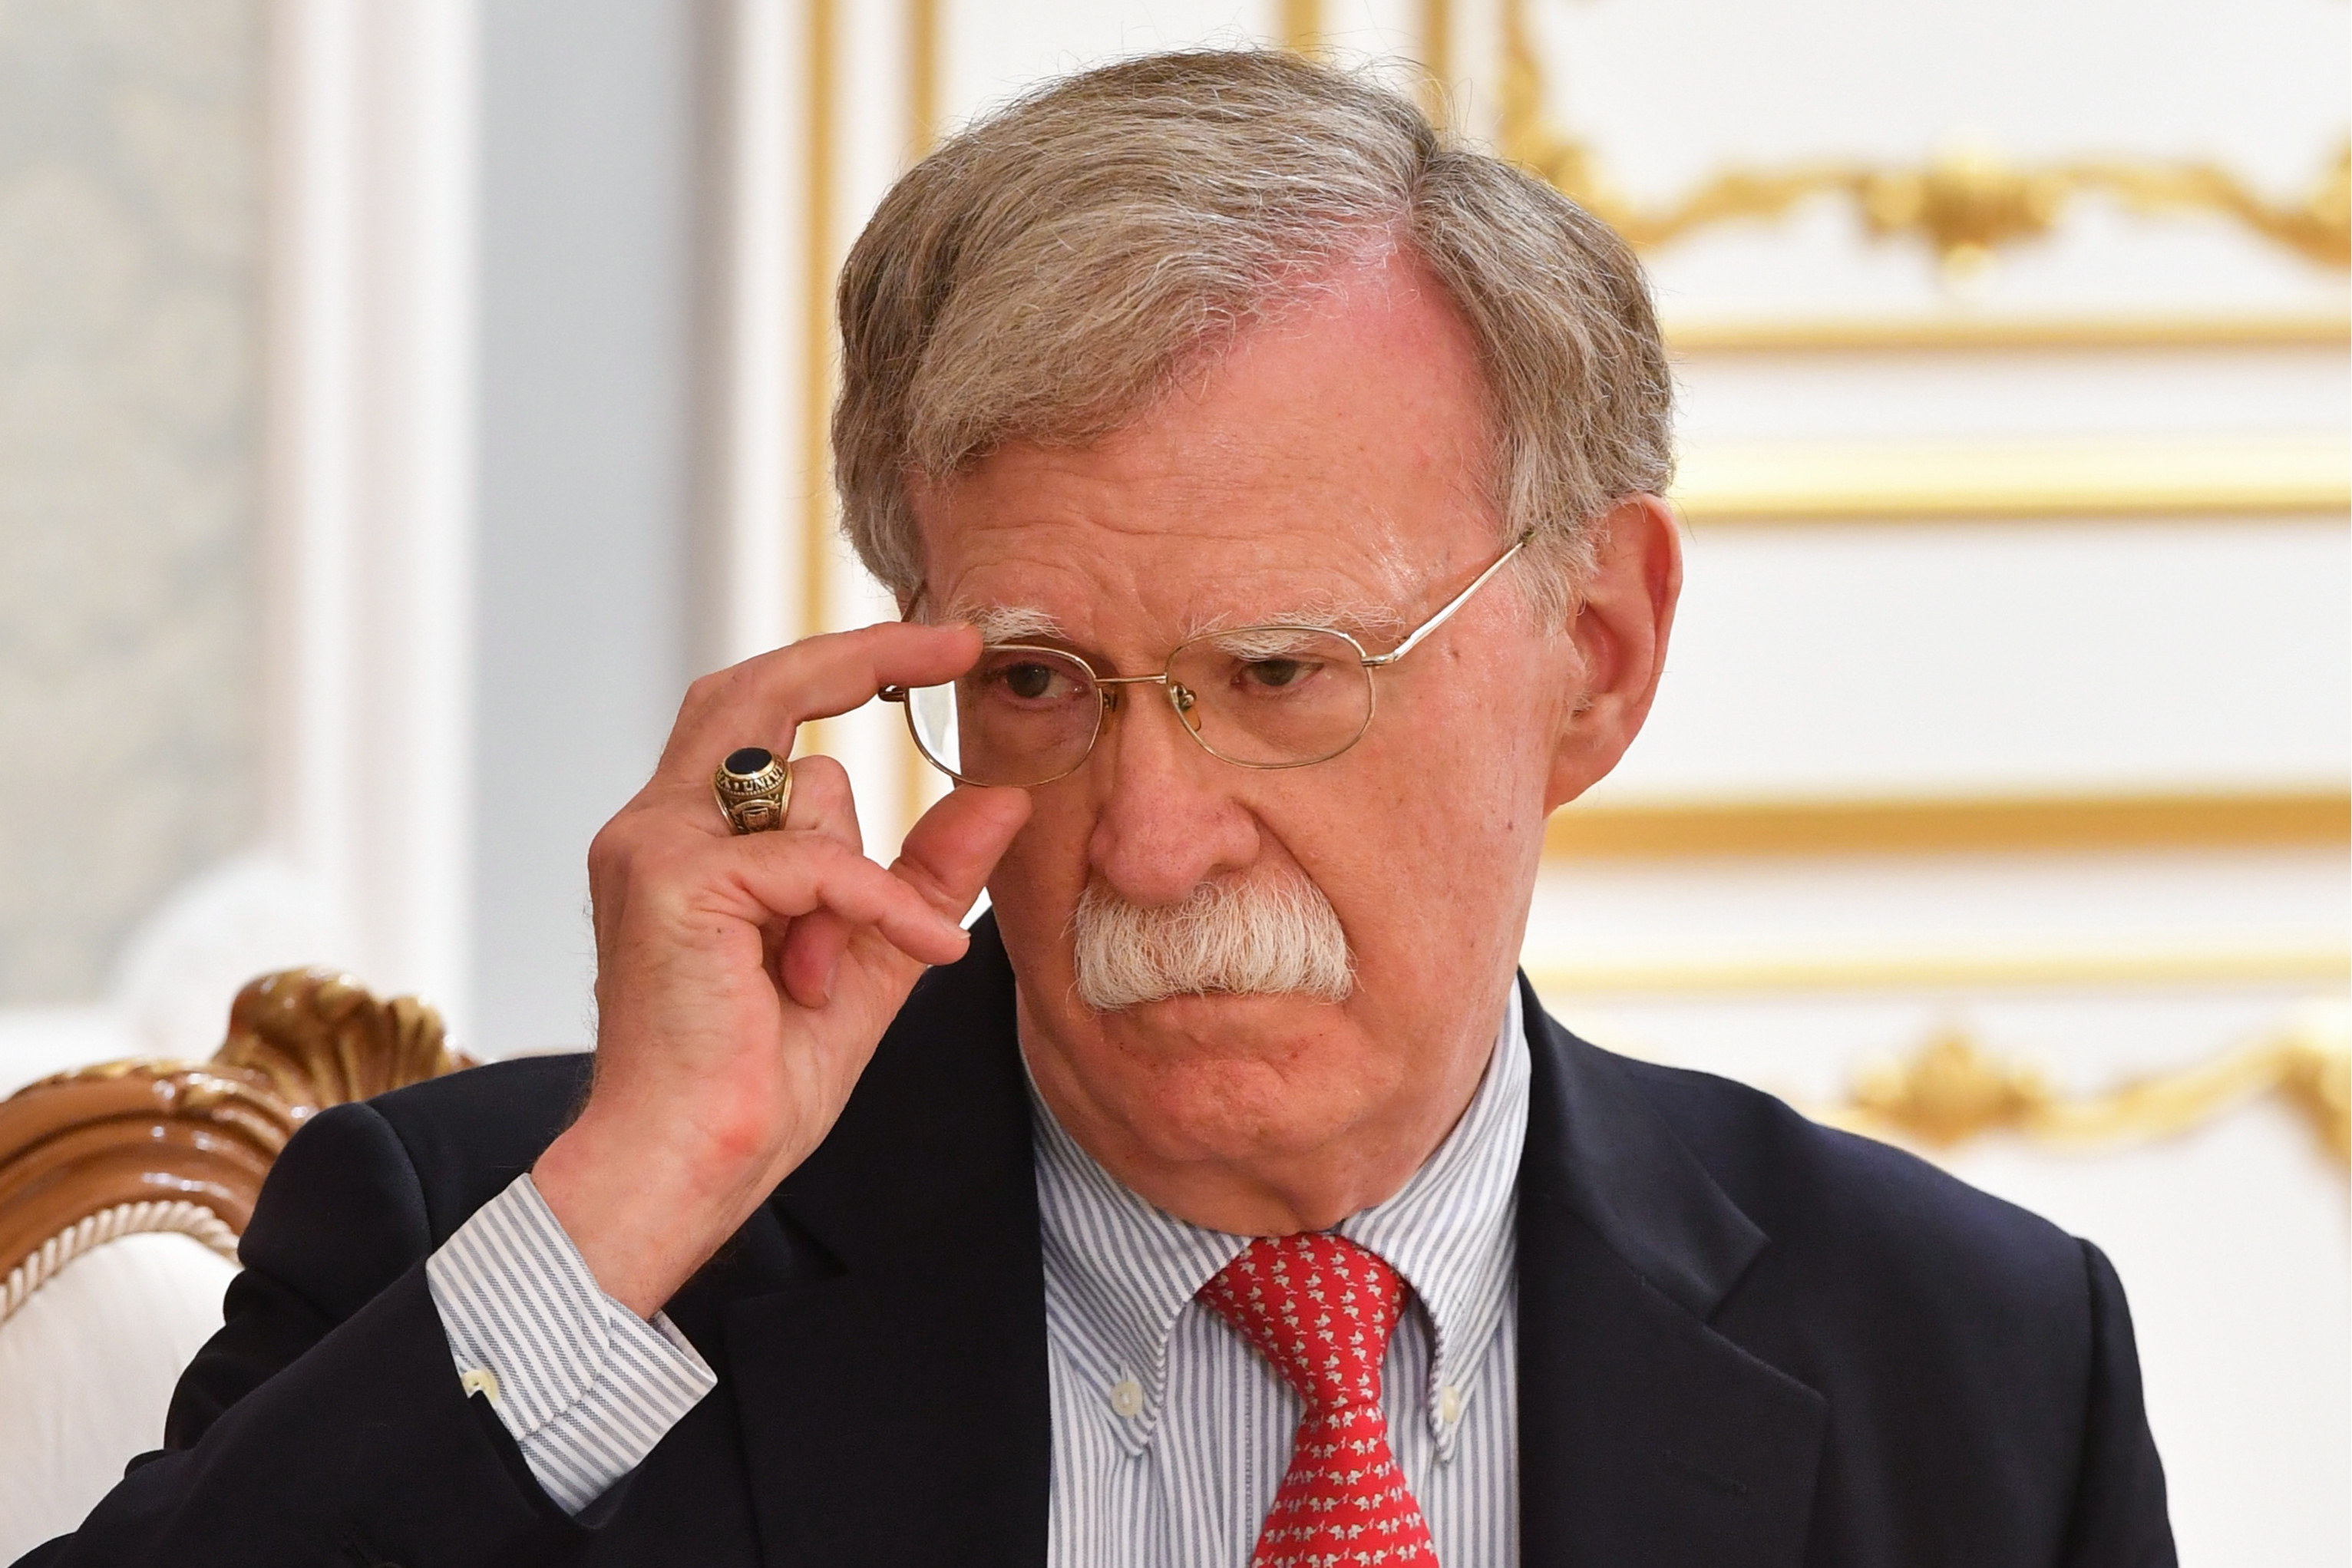 US National Security Adviser John Bolton adjusts his glasses and looks skeptical. Taken during a meeting with Belarus' President Alexander Lukashenko.